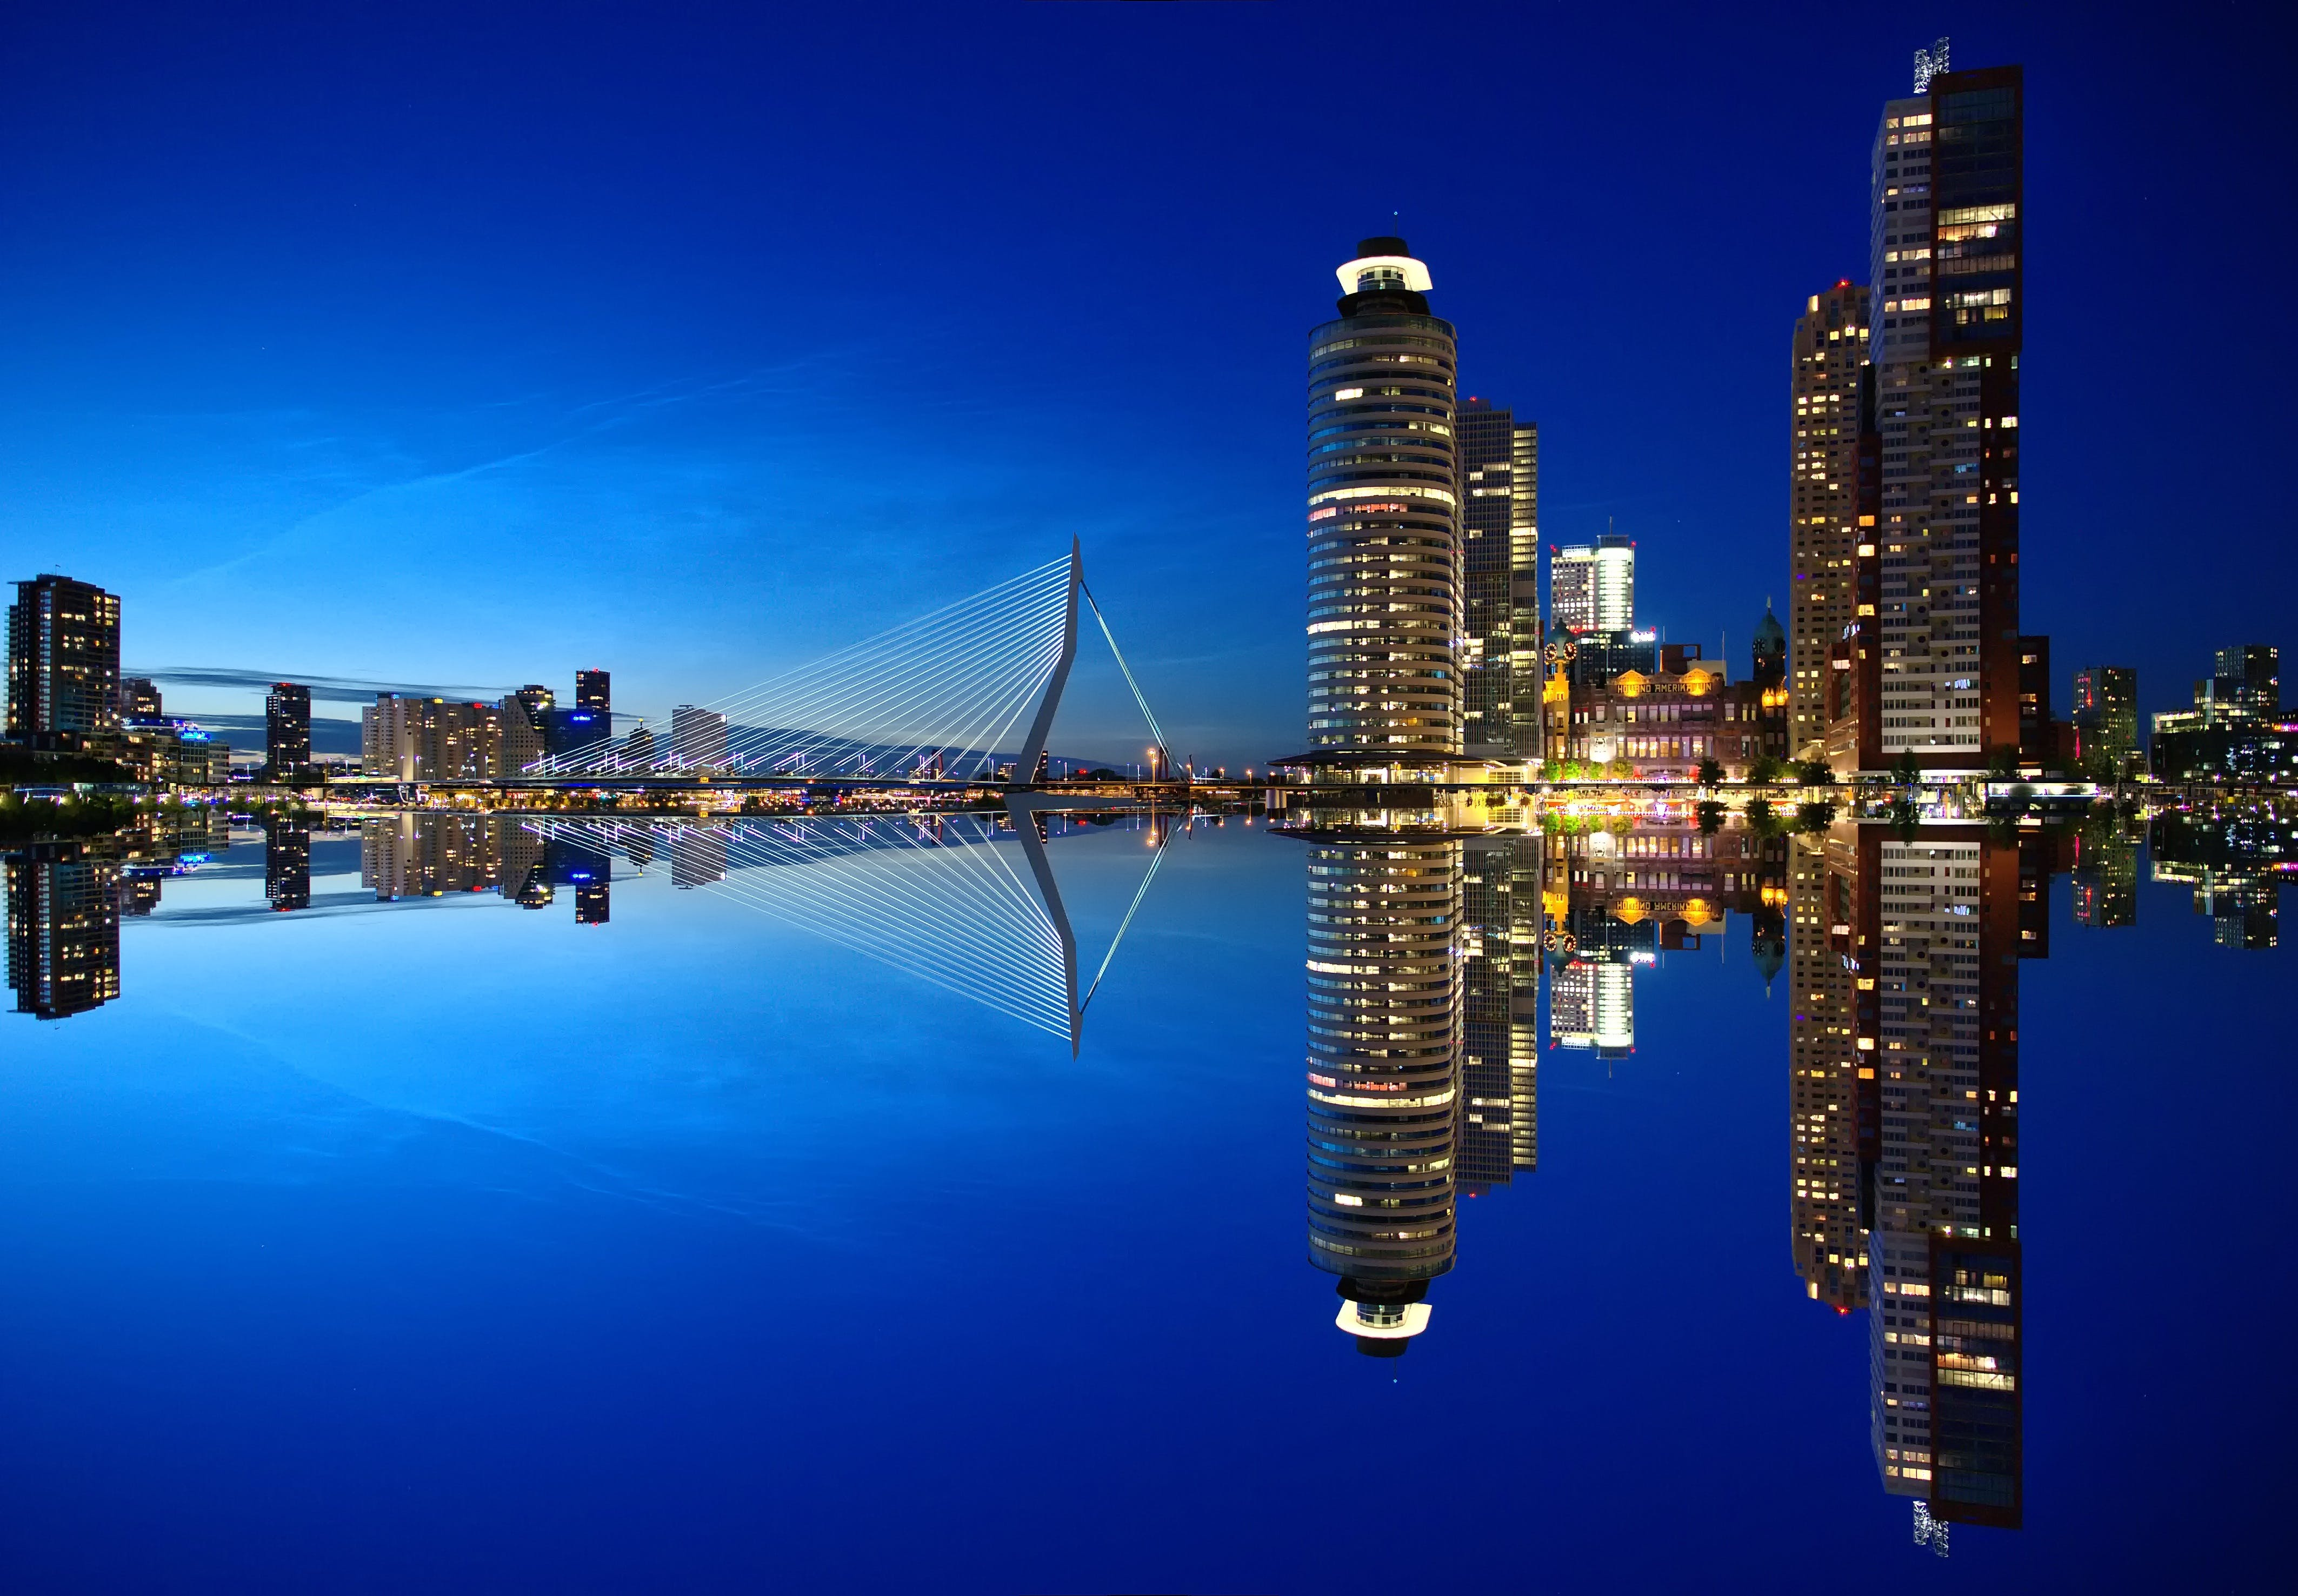 Mirrored Image of High Rise Buildings and Bridge